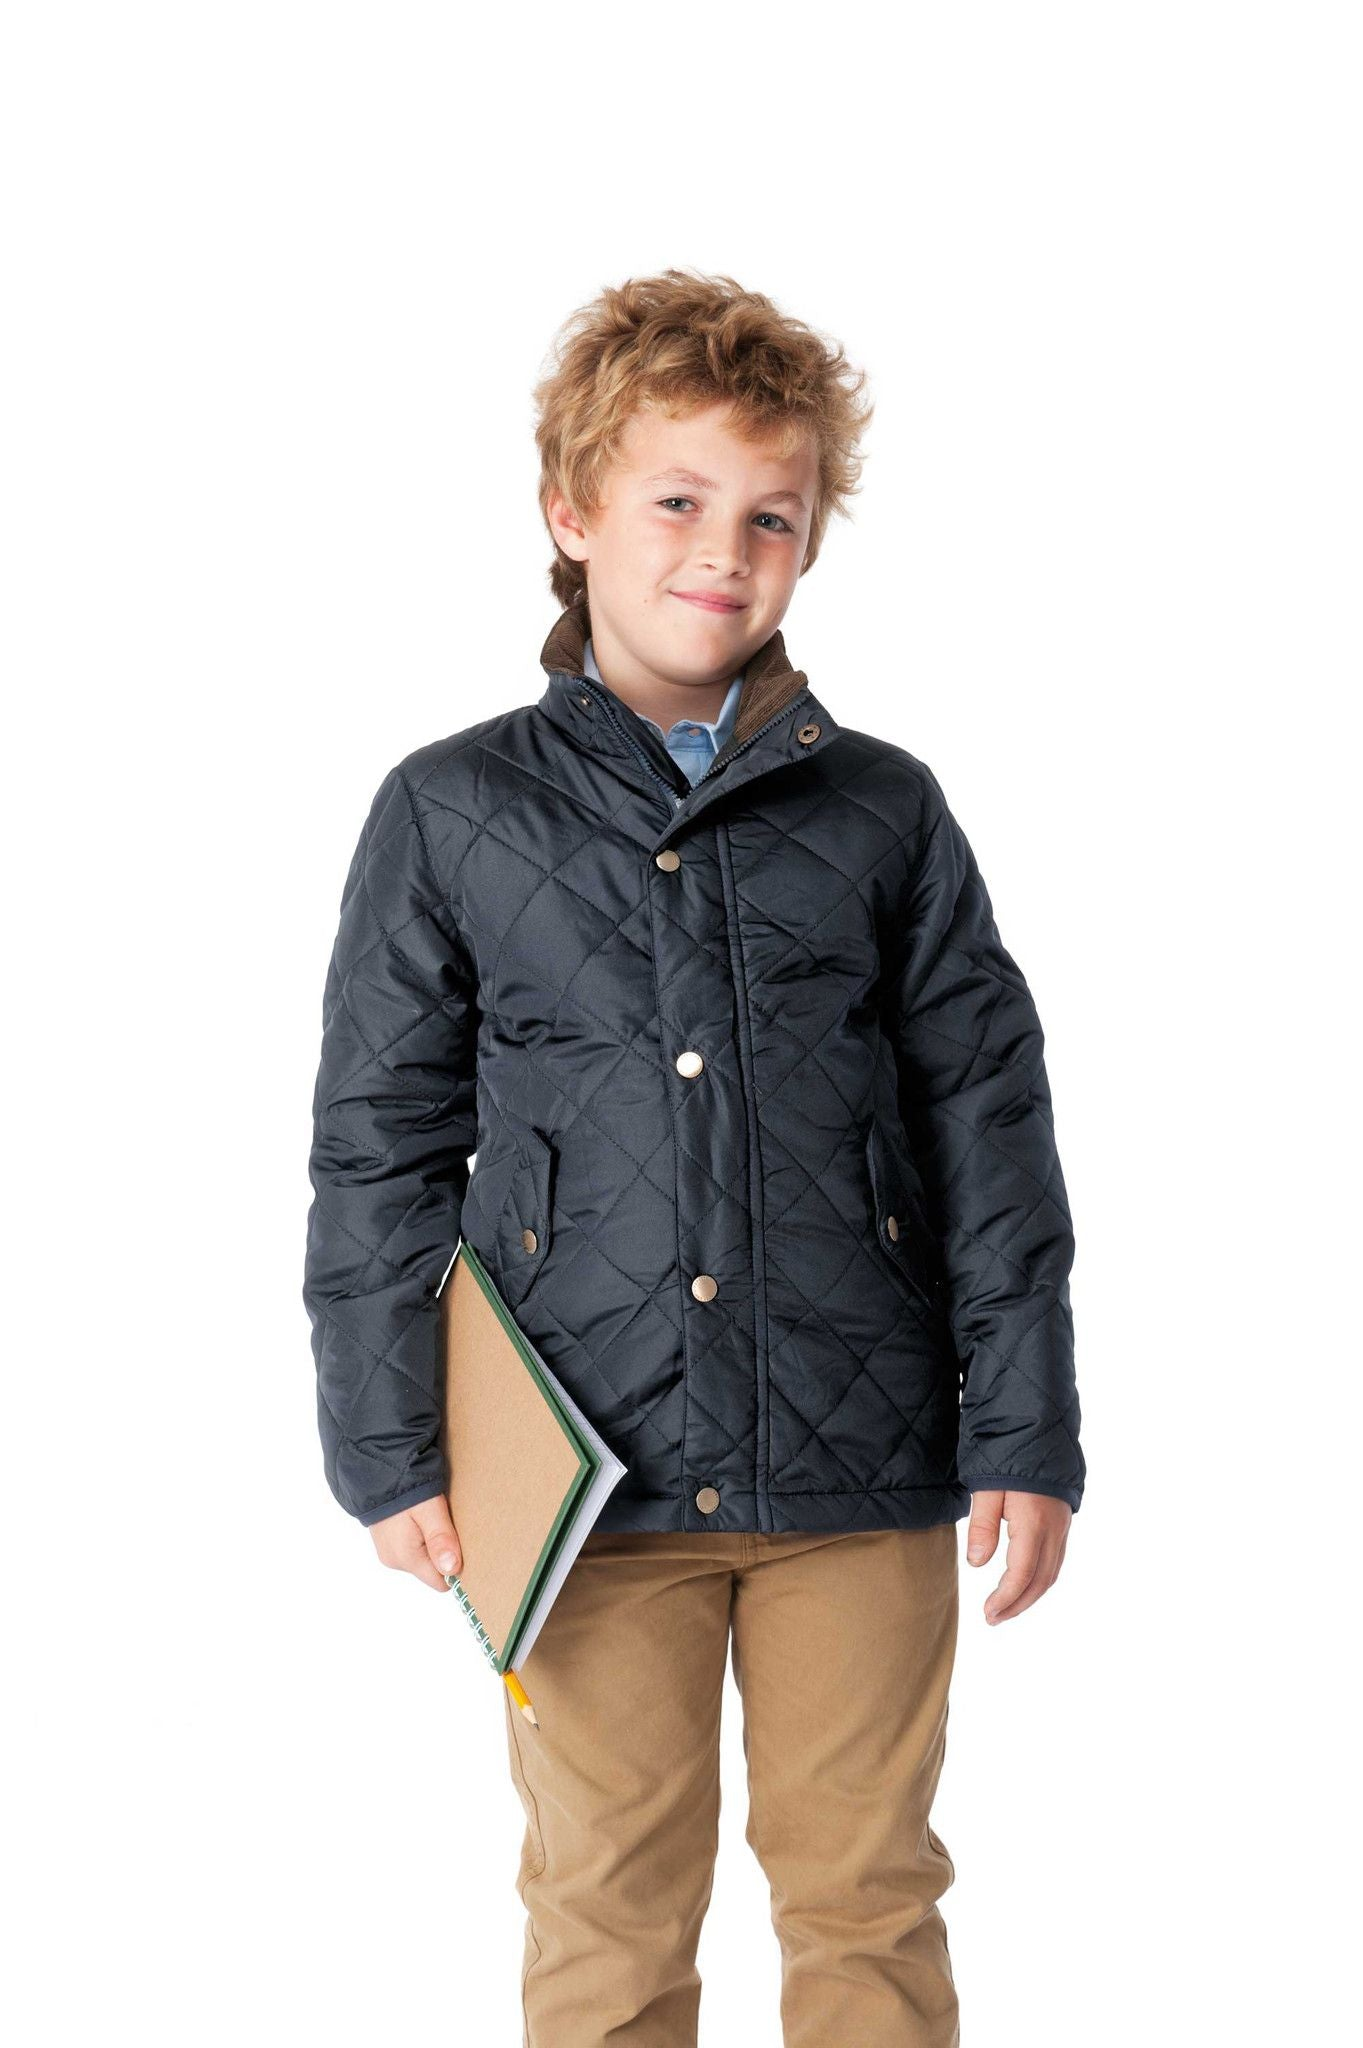 Zach Boys Insulated Quilted Jacket Target Dry